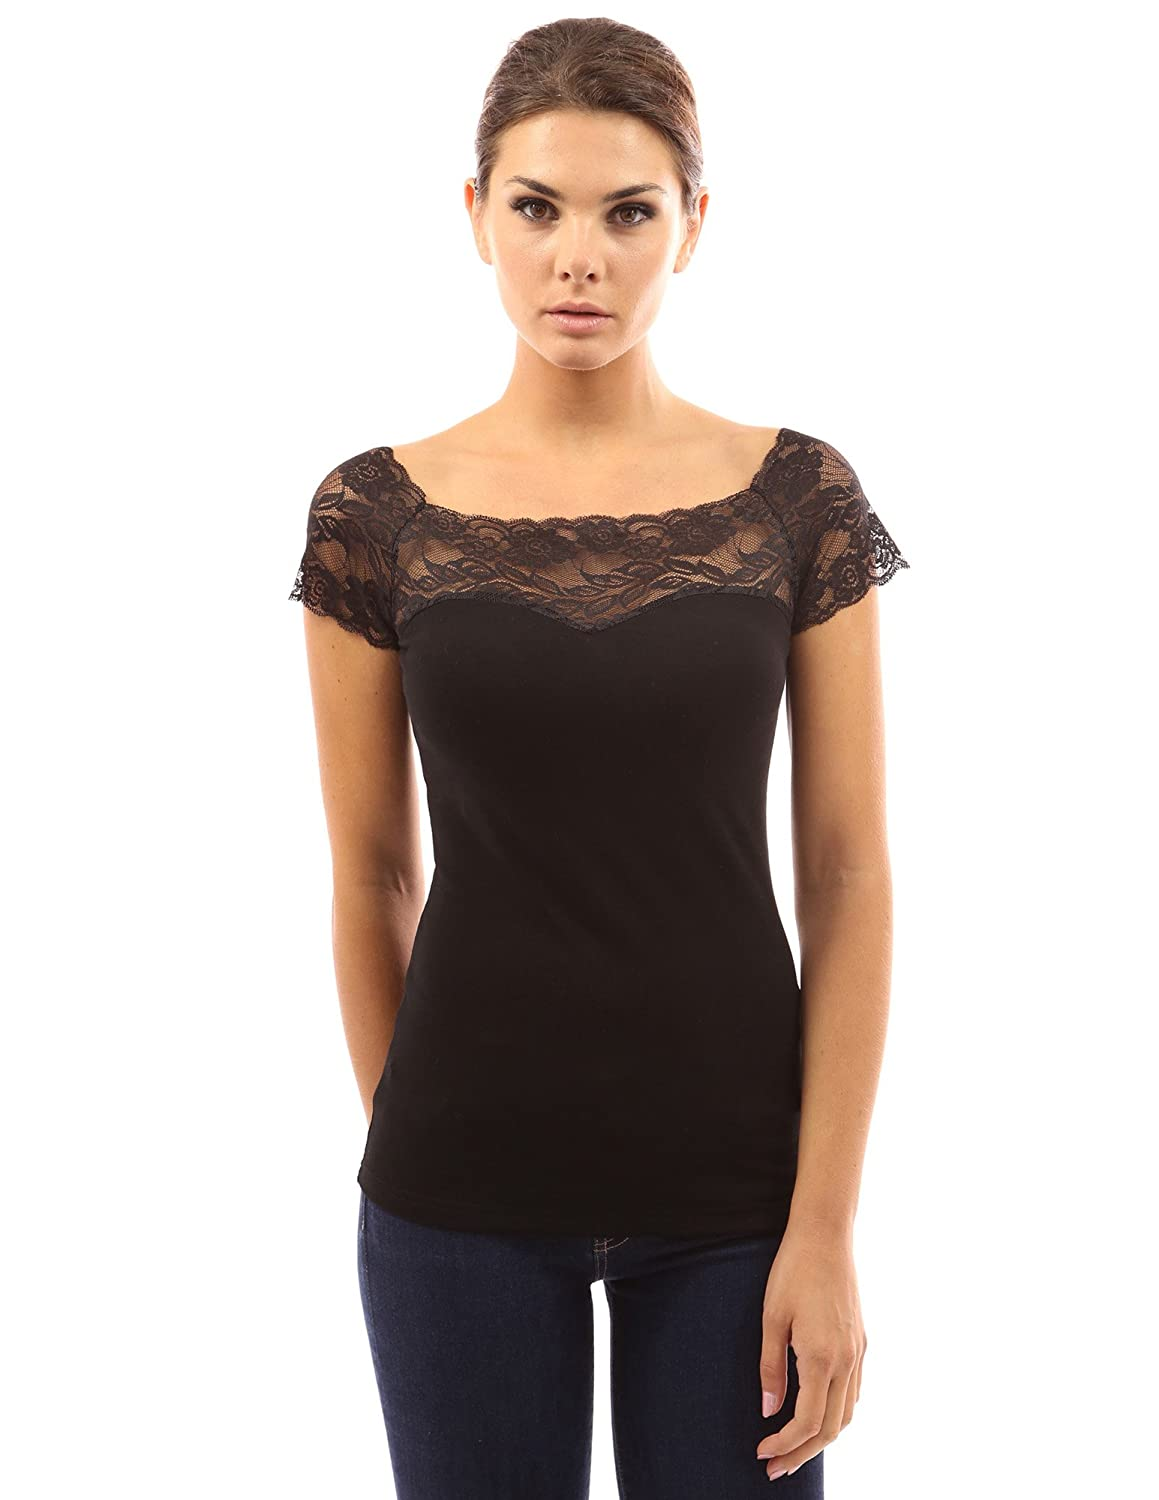 PattyBoutik Women's Square Neck Lace Insert Top